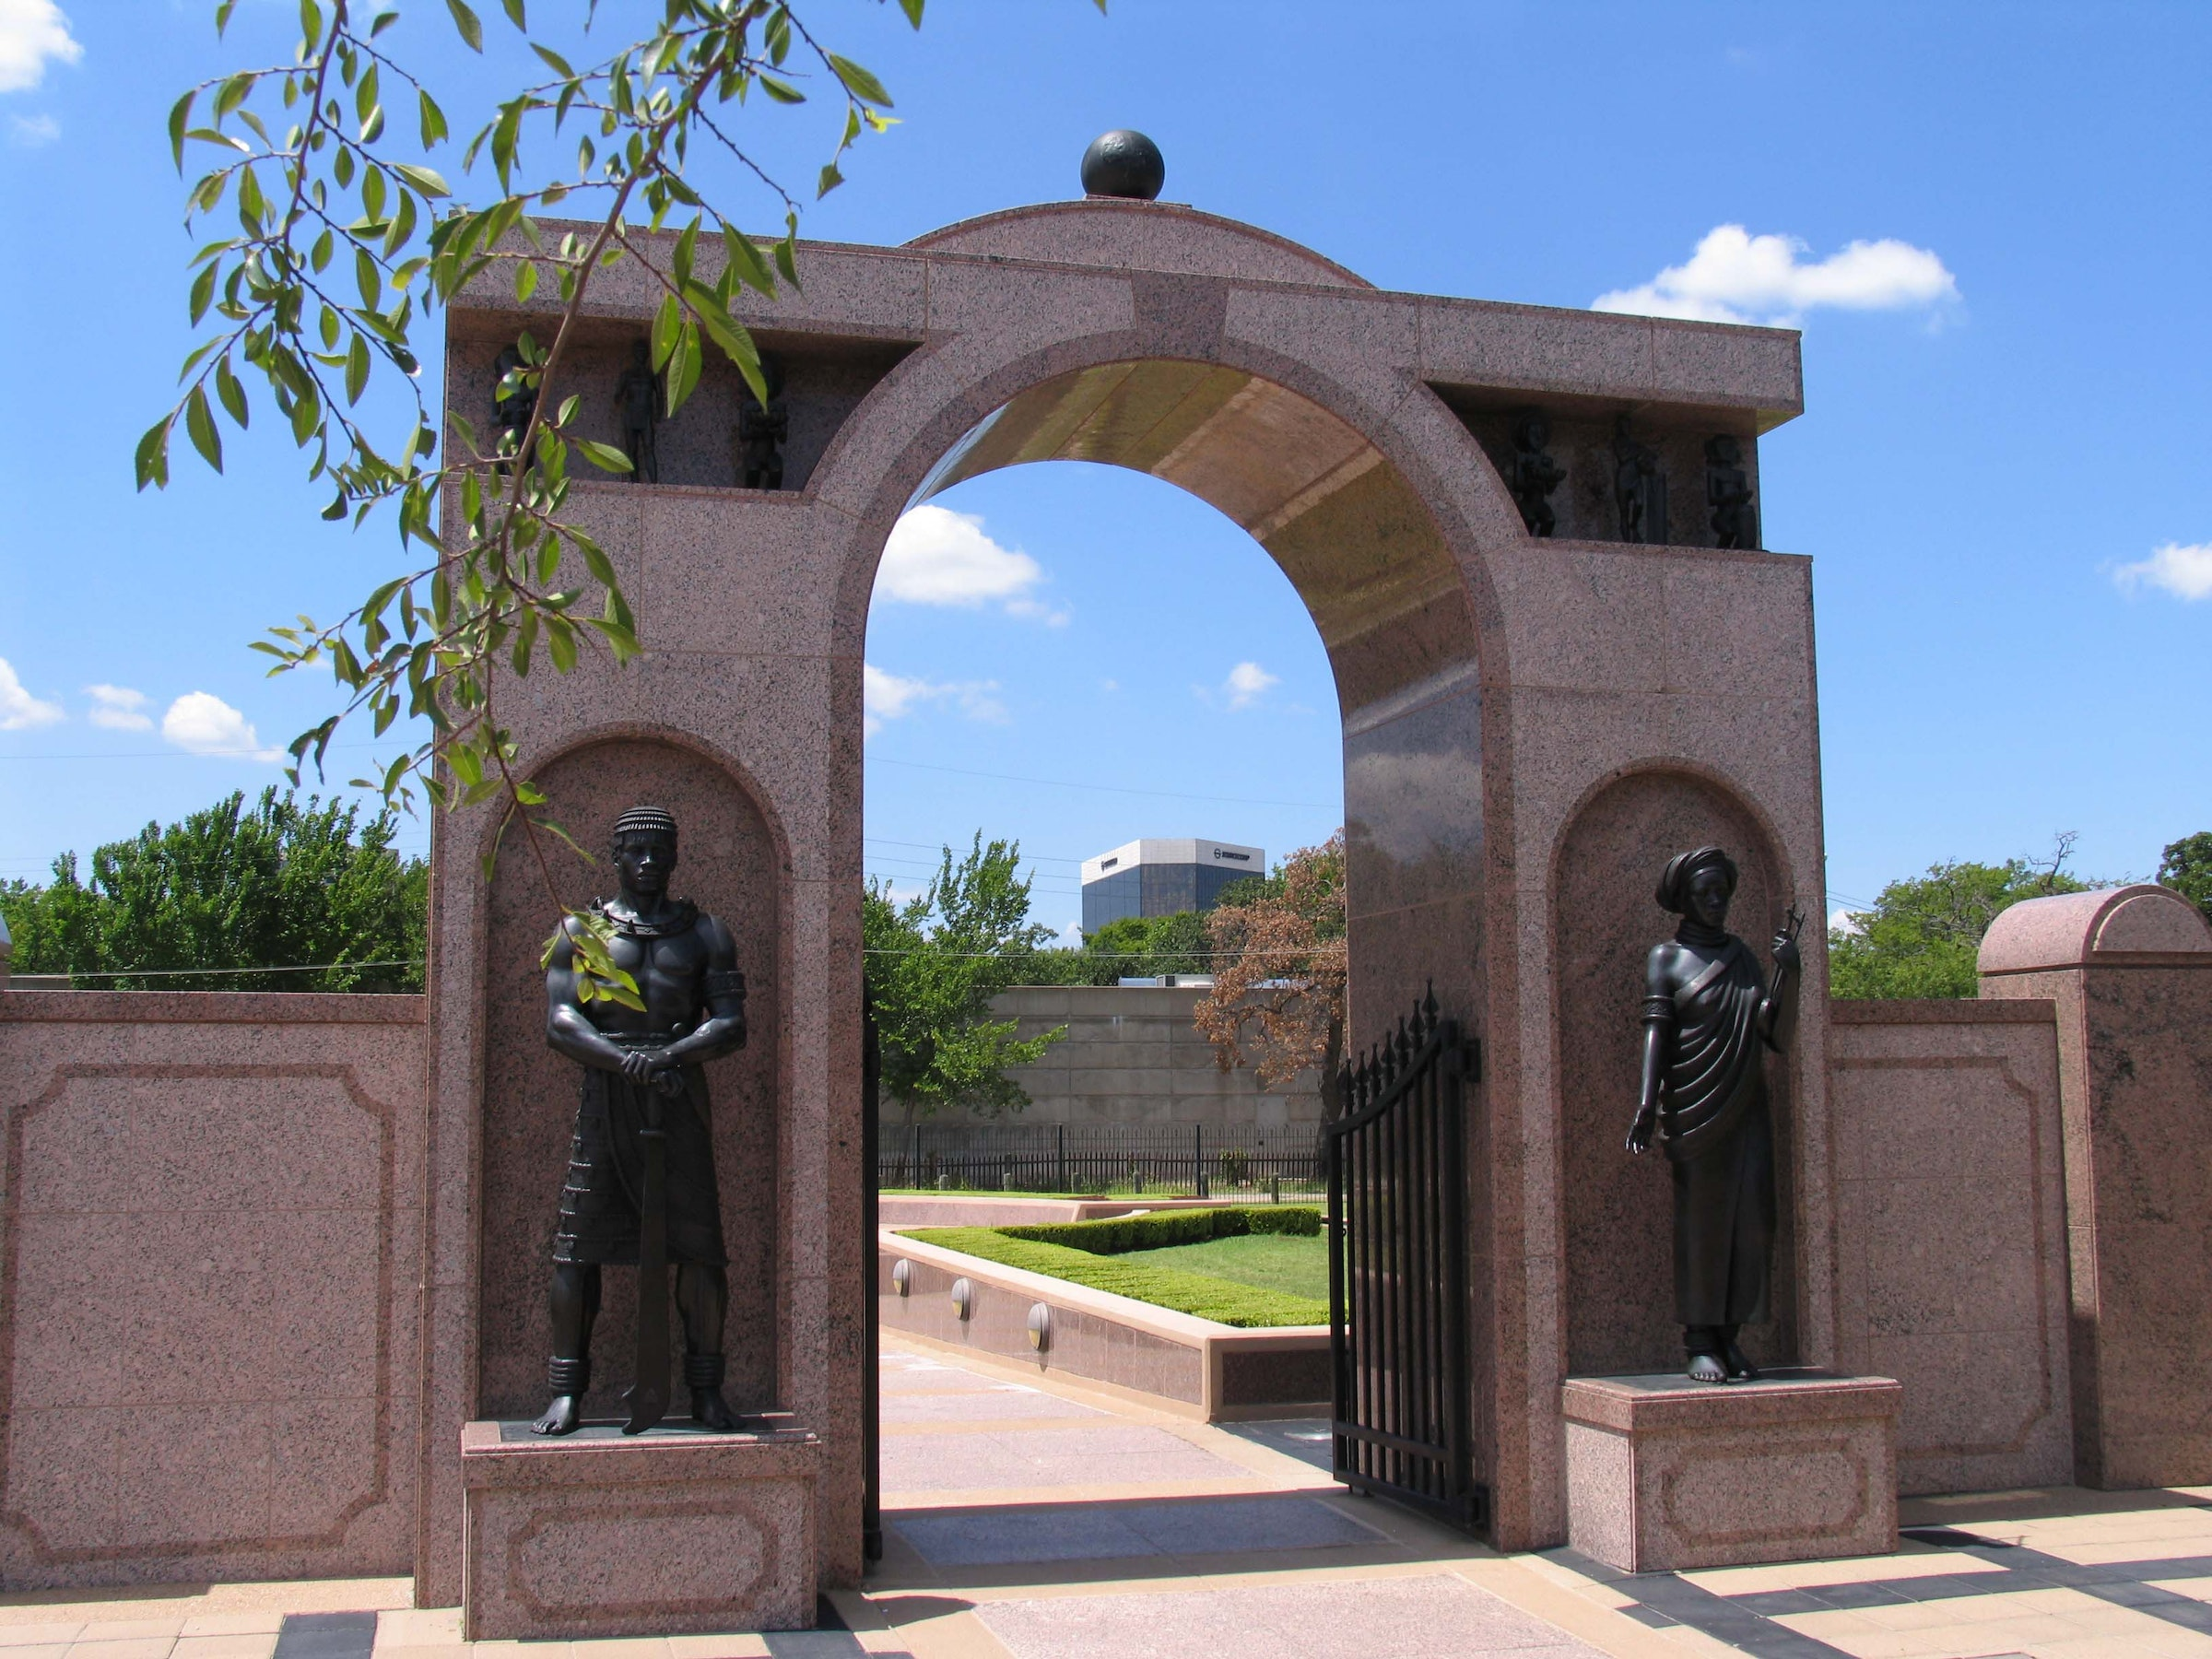 Freedman's Cemetery Memorial in Beyond Dallas